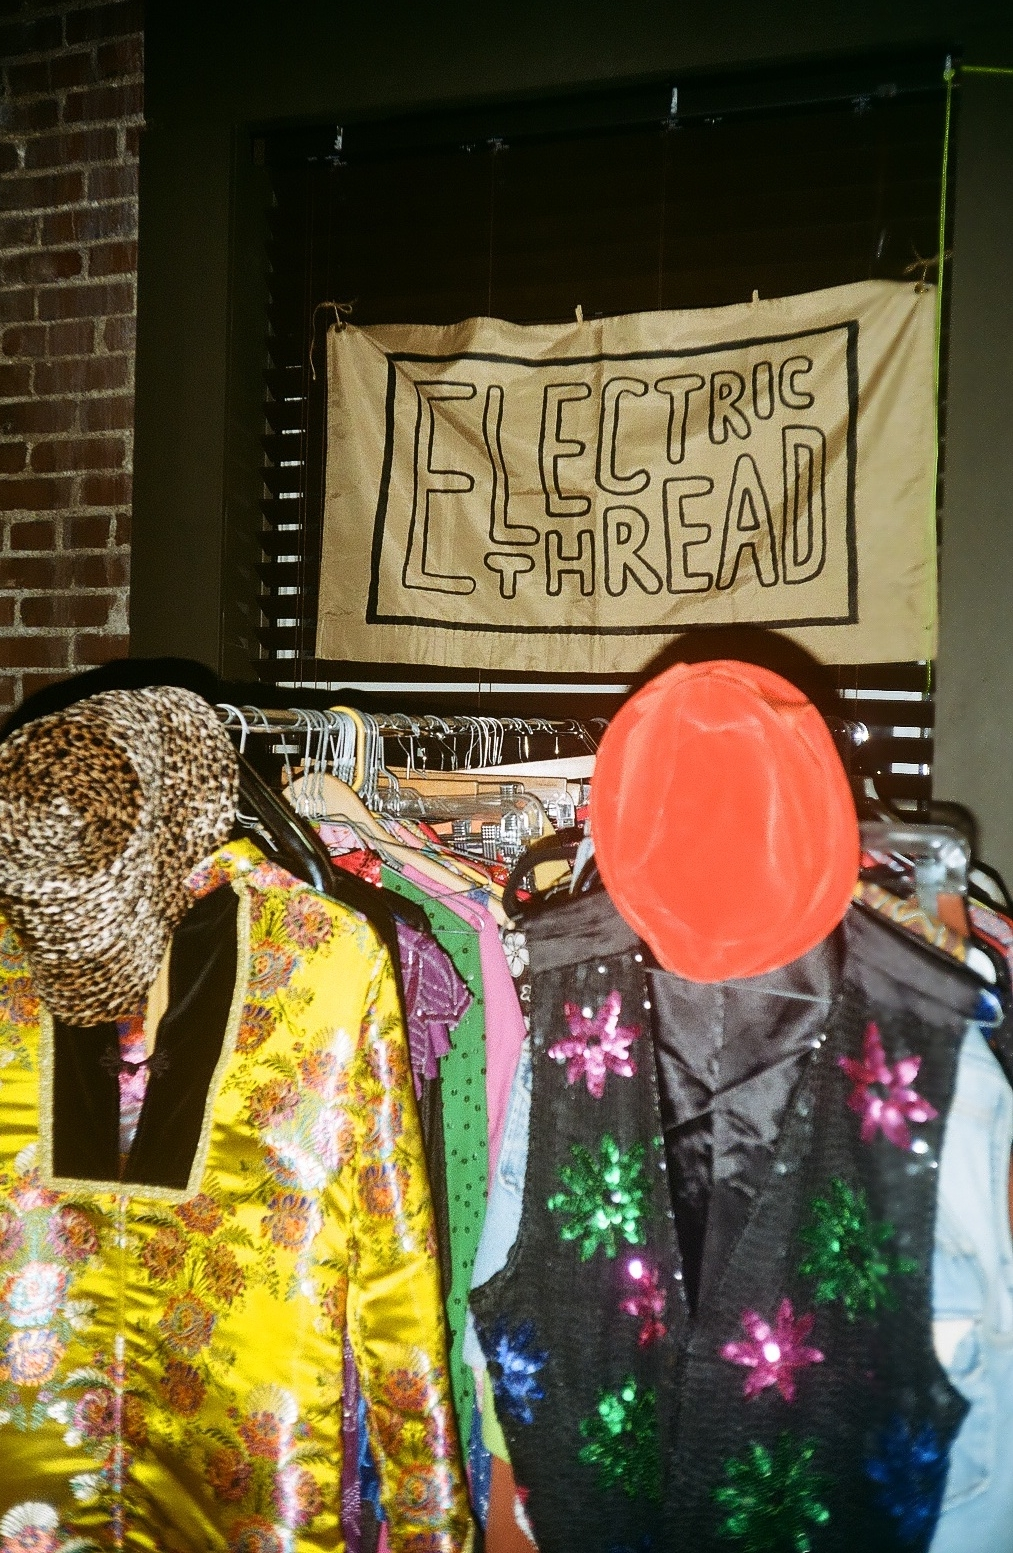 VINTAGE WEAR PROVIDED BY ELECTRIC THREAD